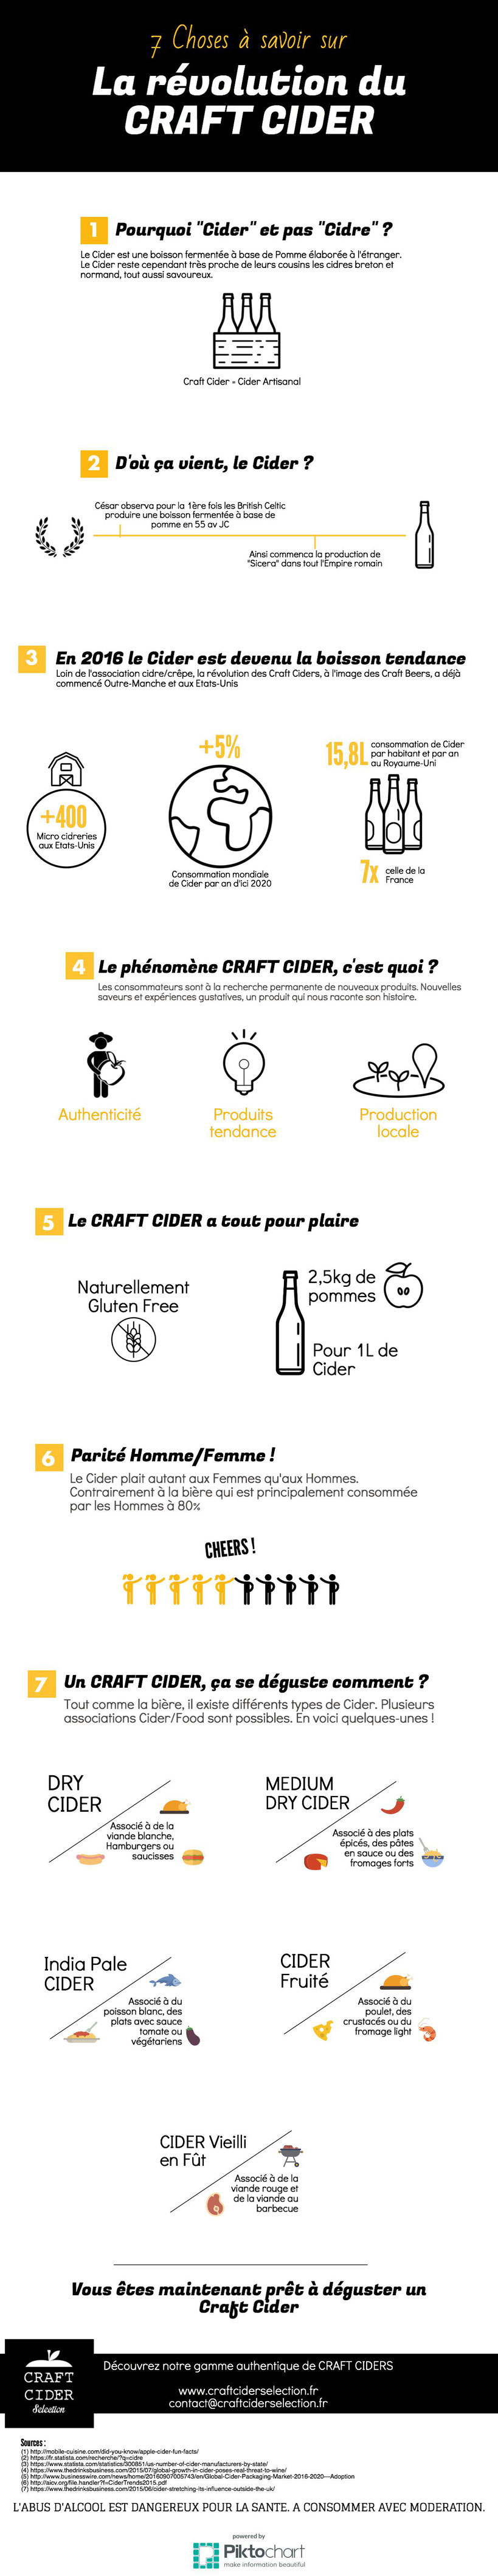 infographie cidre étranger révolution craft cider is the new beer